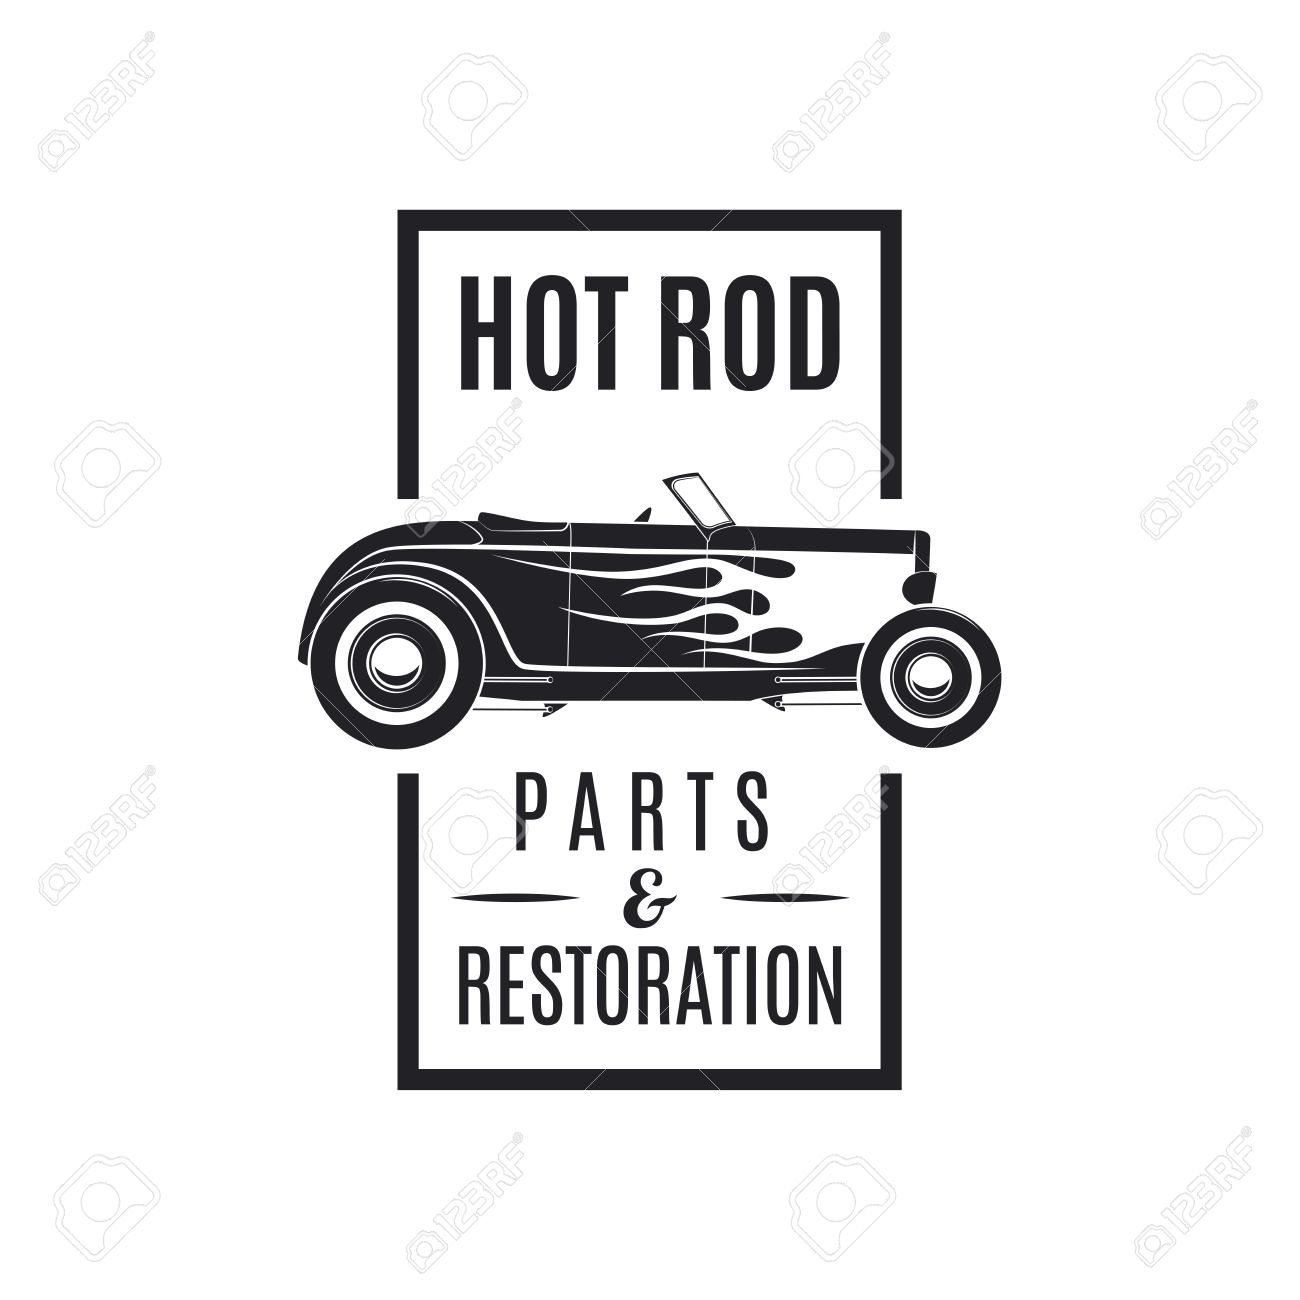 Vintage Vecor Hot Rod Icon. Hot Rod Parts Restoration. Royalty Free ...